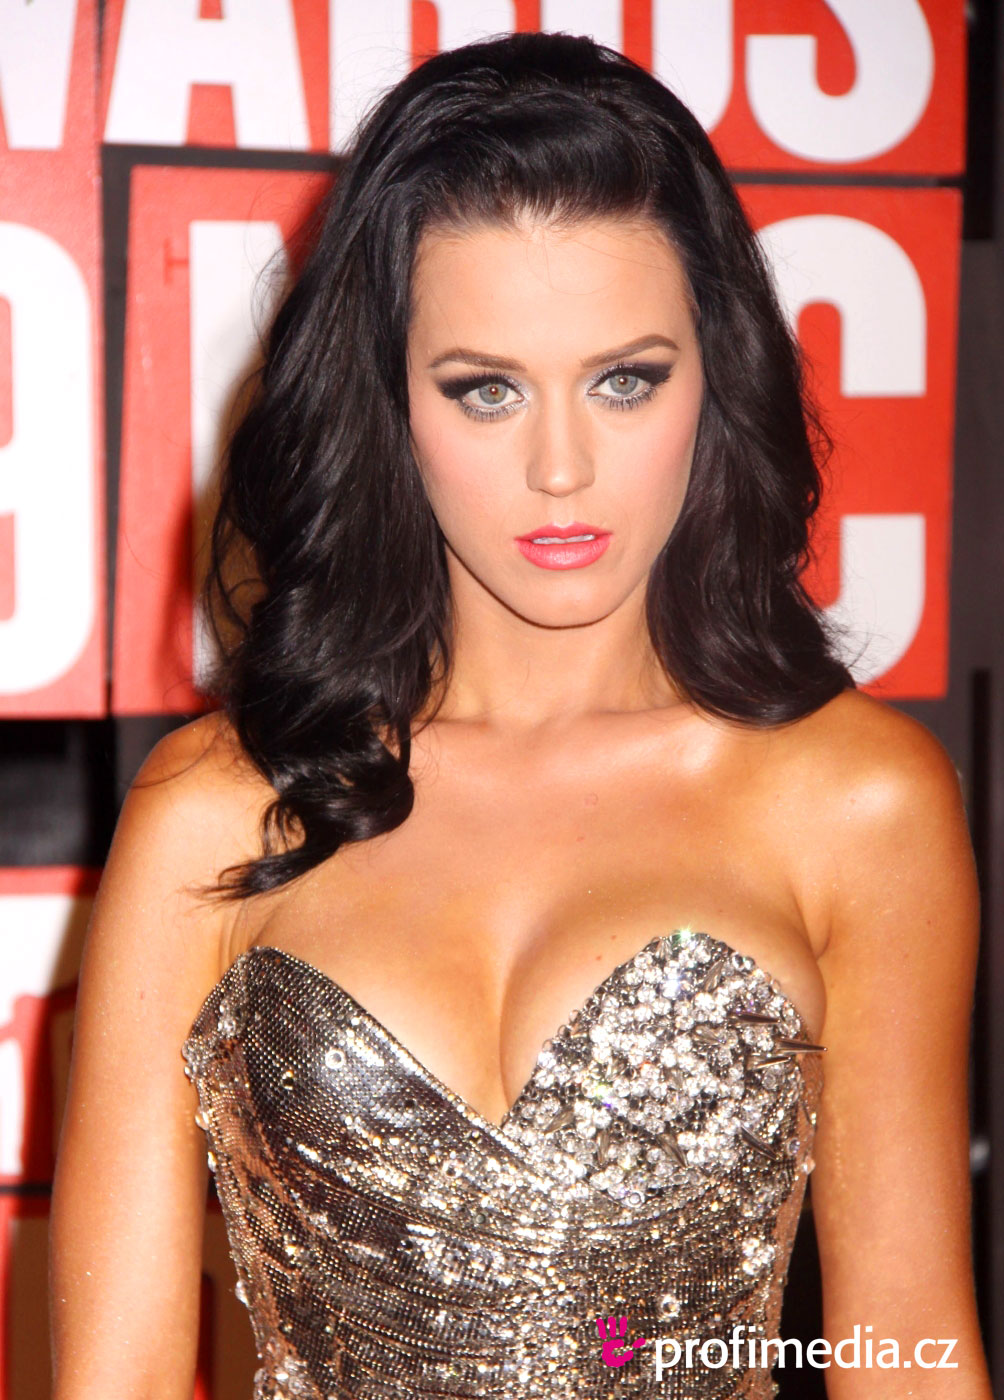 Magnificent Katy Perry Hairstyle Easyhairstyler Short Hairstyles For Black Women Fulllsitofus